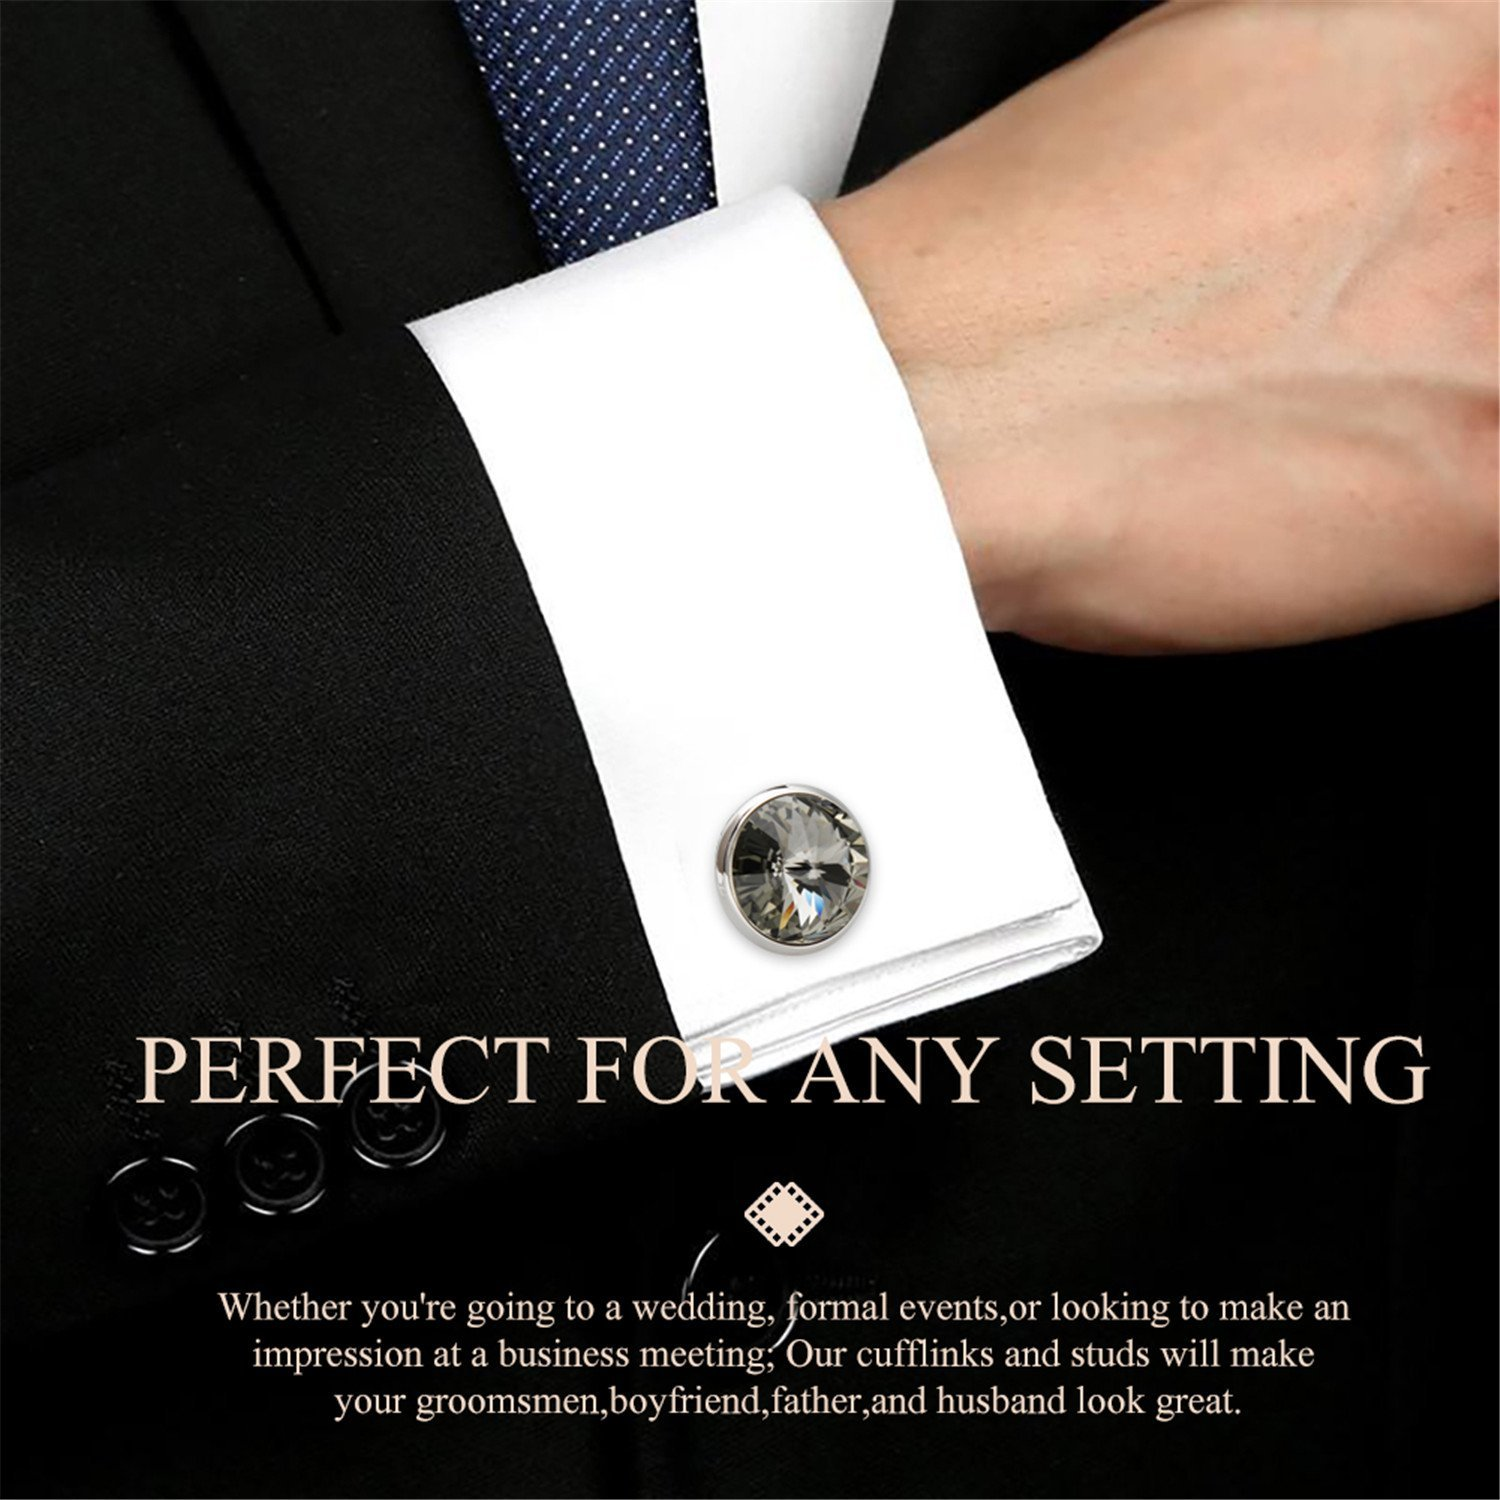 HAWSON Cufflink and Studs Tuxedo Set Silver Color with Swarovski Crystals in Grey by HAWSON (Image #3)